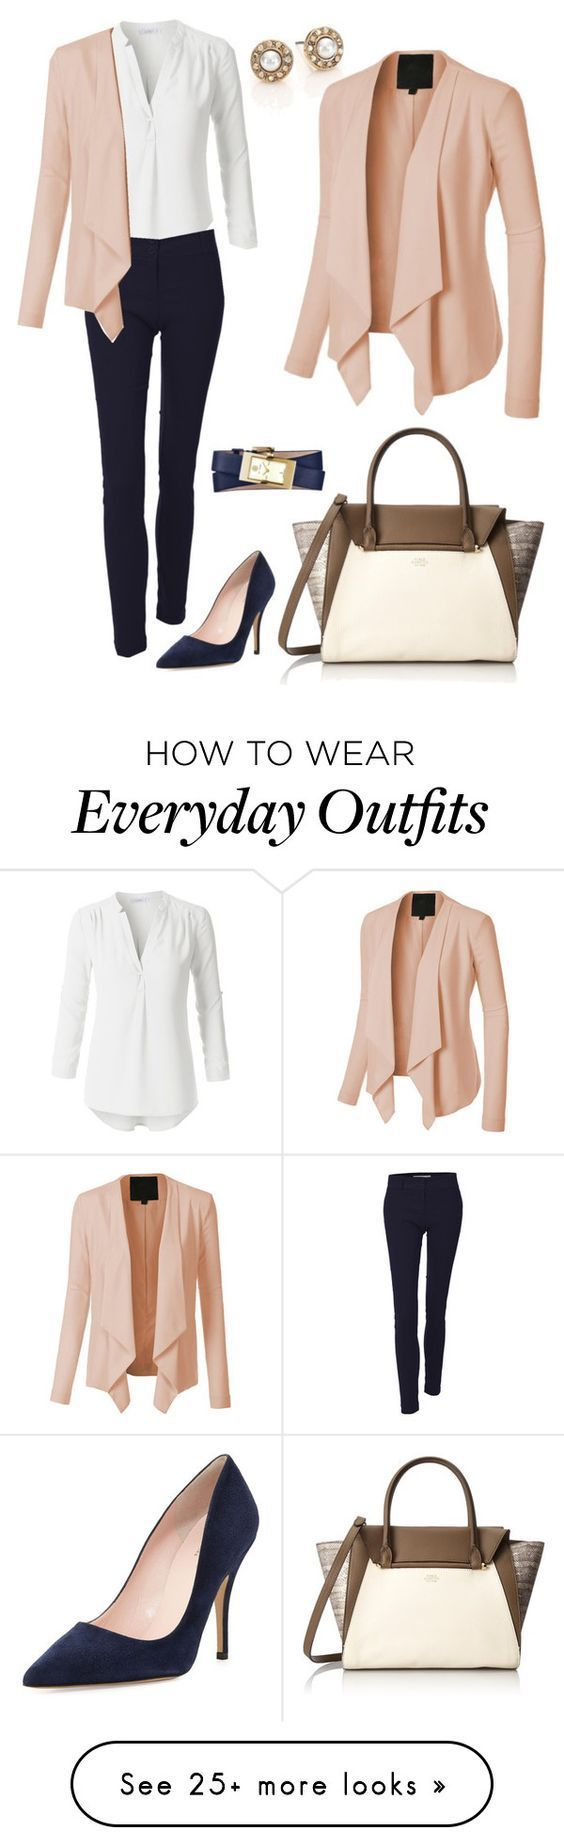 How to Wear Everyday Outfits // Fashion Style Ideas & Tips